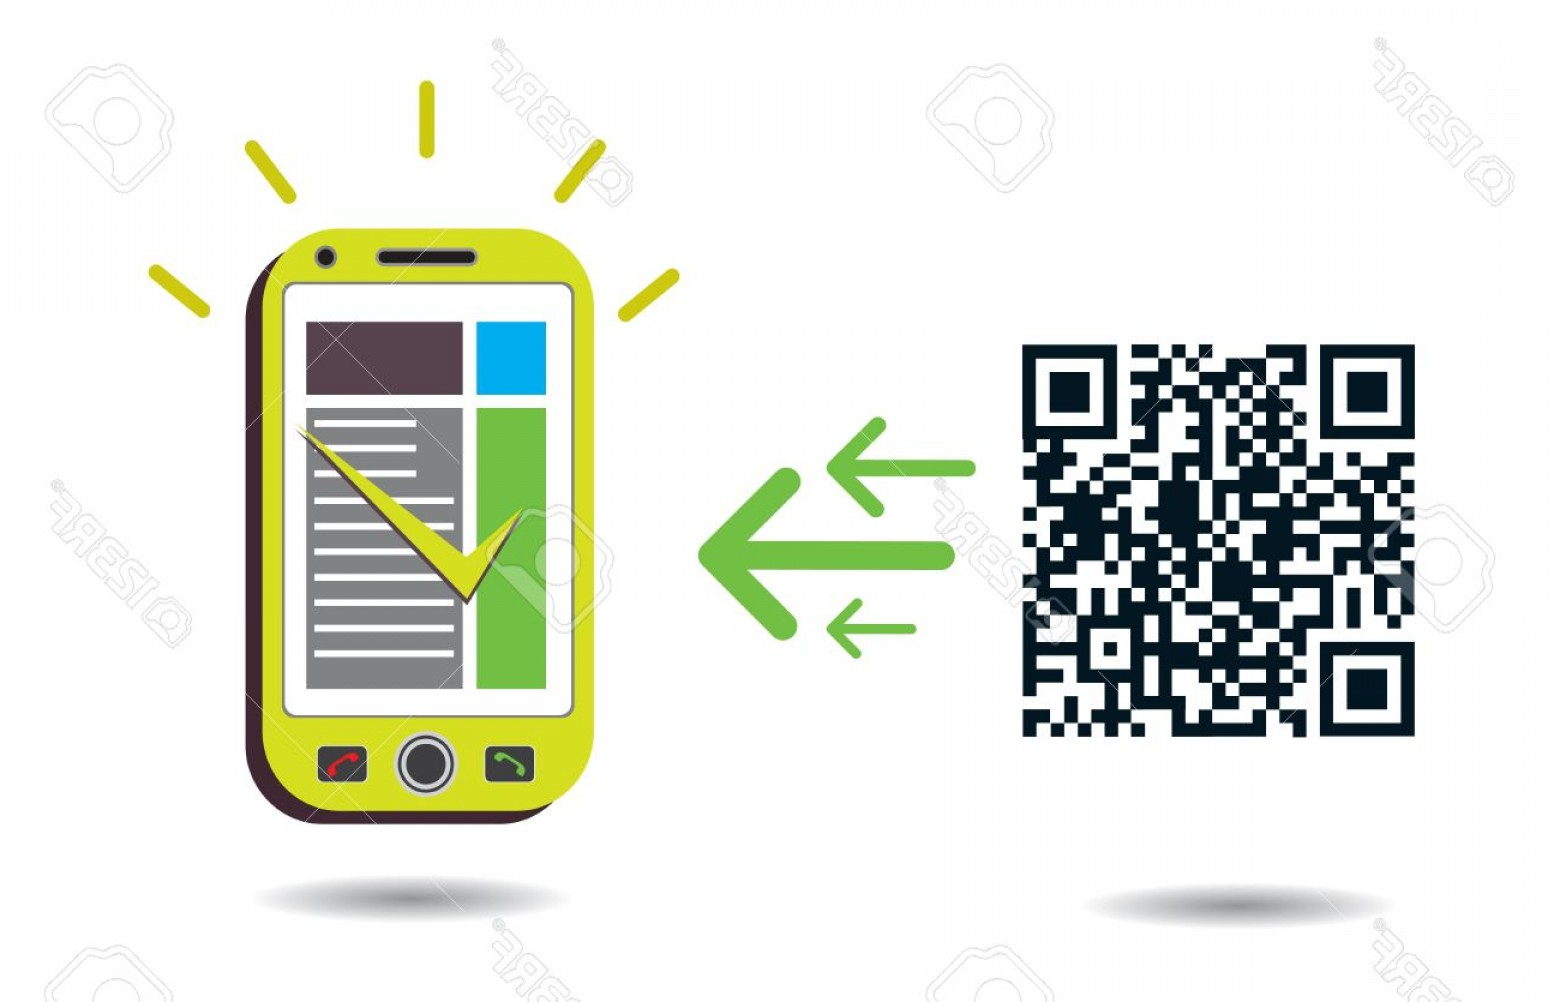 QR Mobile Phone Vector: Photoqr Code Processing Graphic Showing Cellphone Processing Qr Codes Cmyk Global Process Colors Used Org